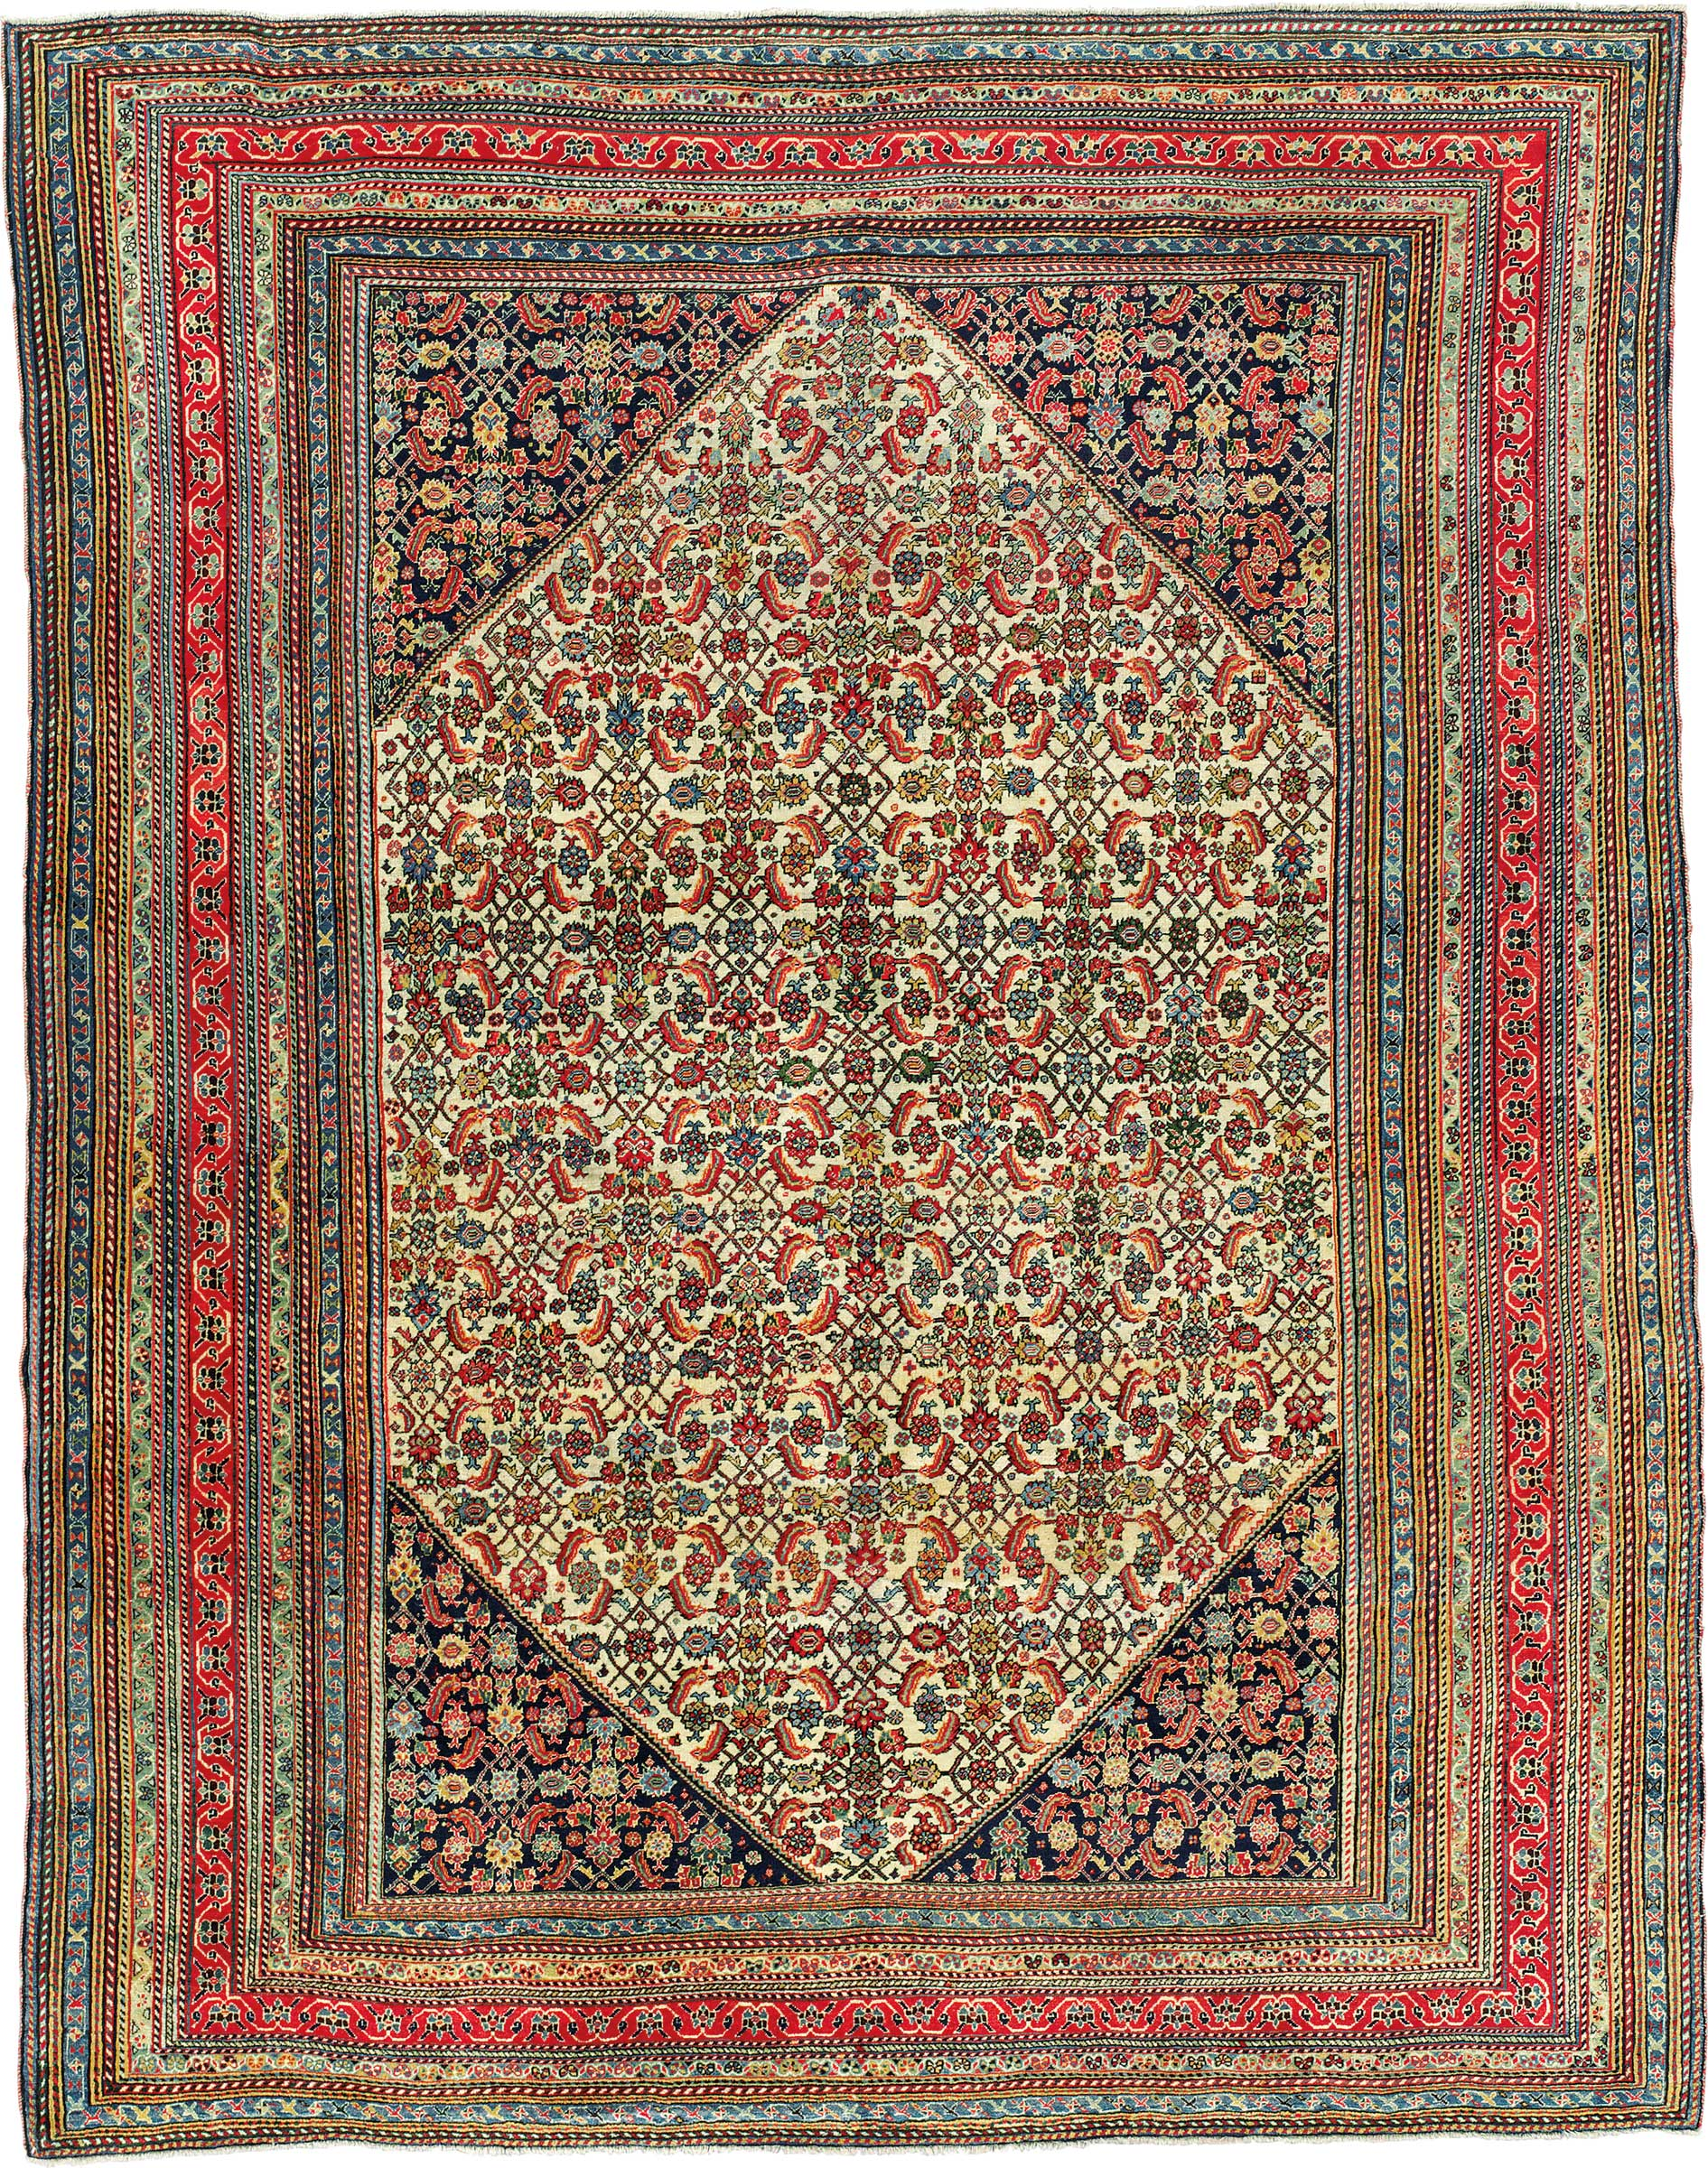 oriental carpets a qashqai rug. south persia, circa 1890. 8ft 1 in x 6ft 3 SOZATND